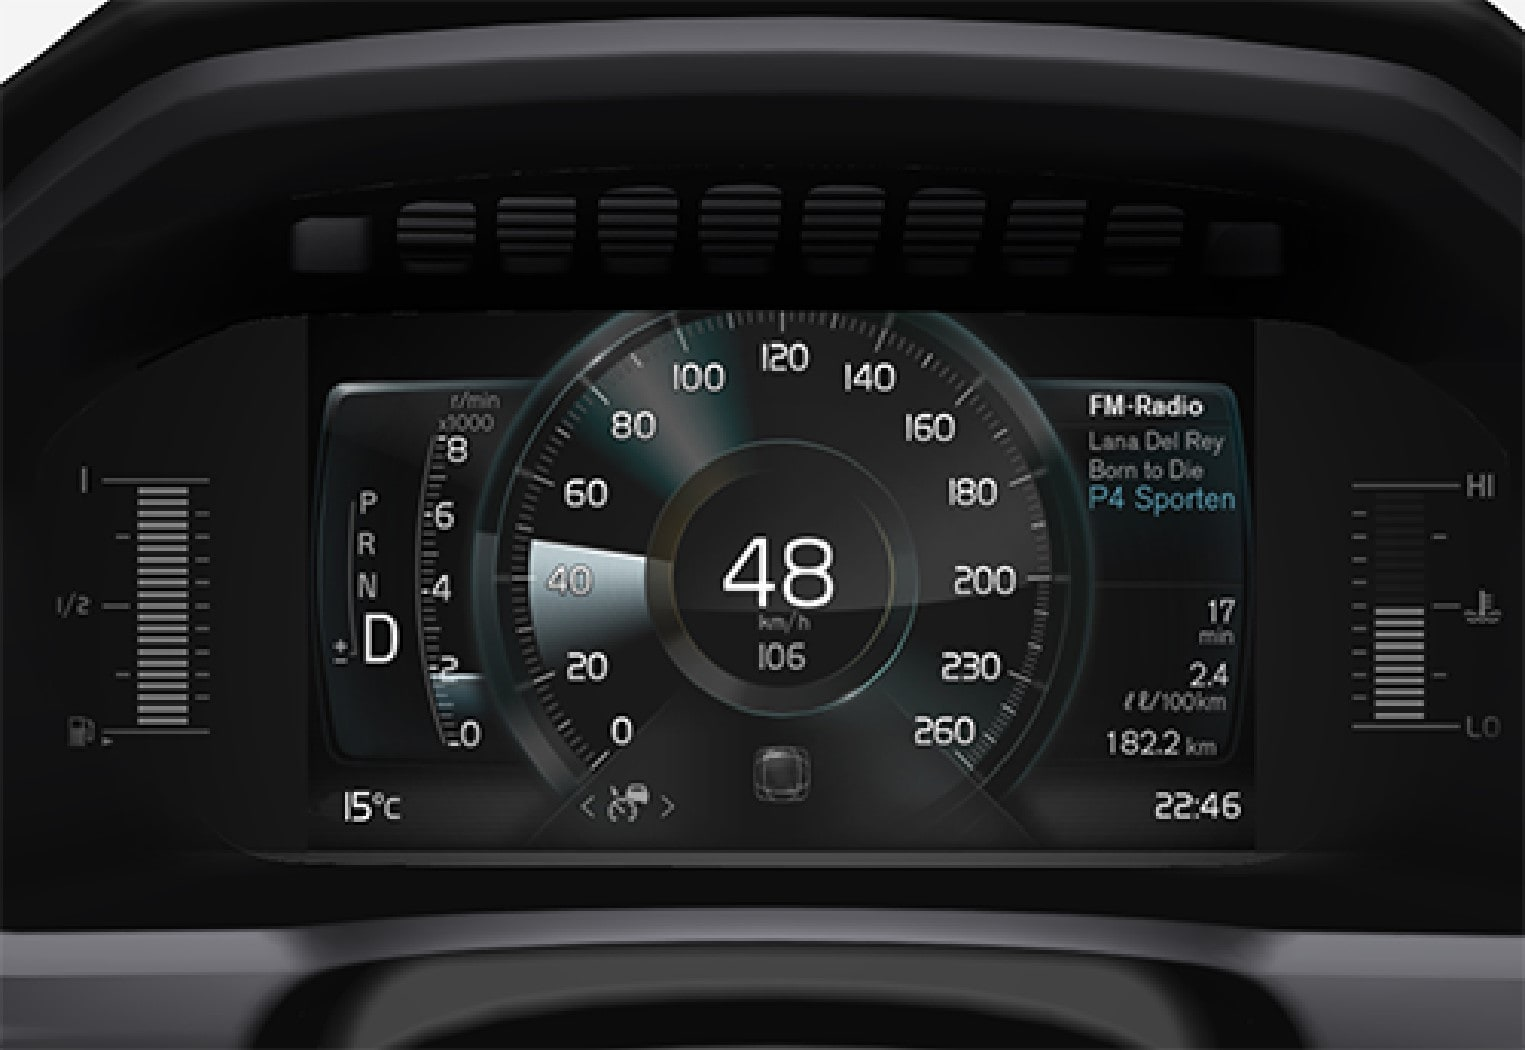 P5-1507-driver display overview 8